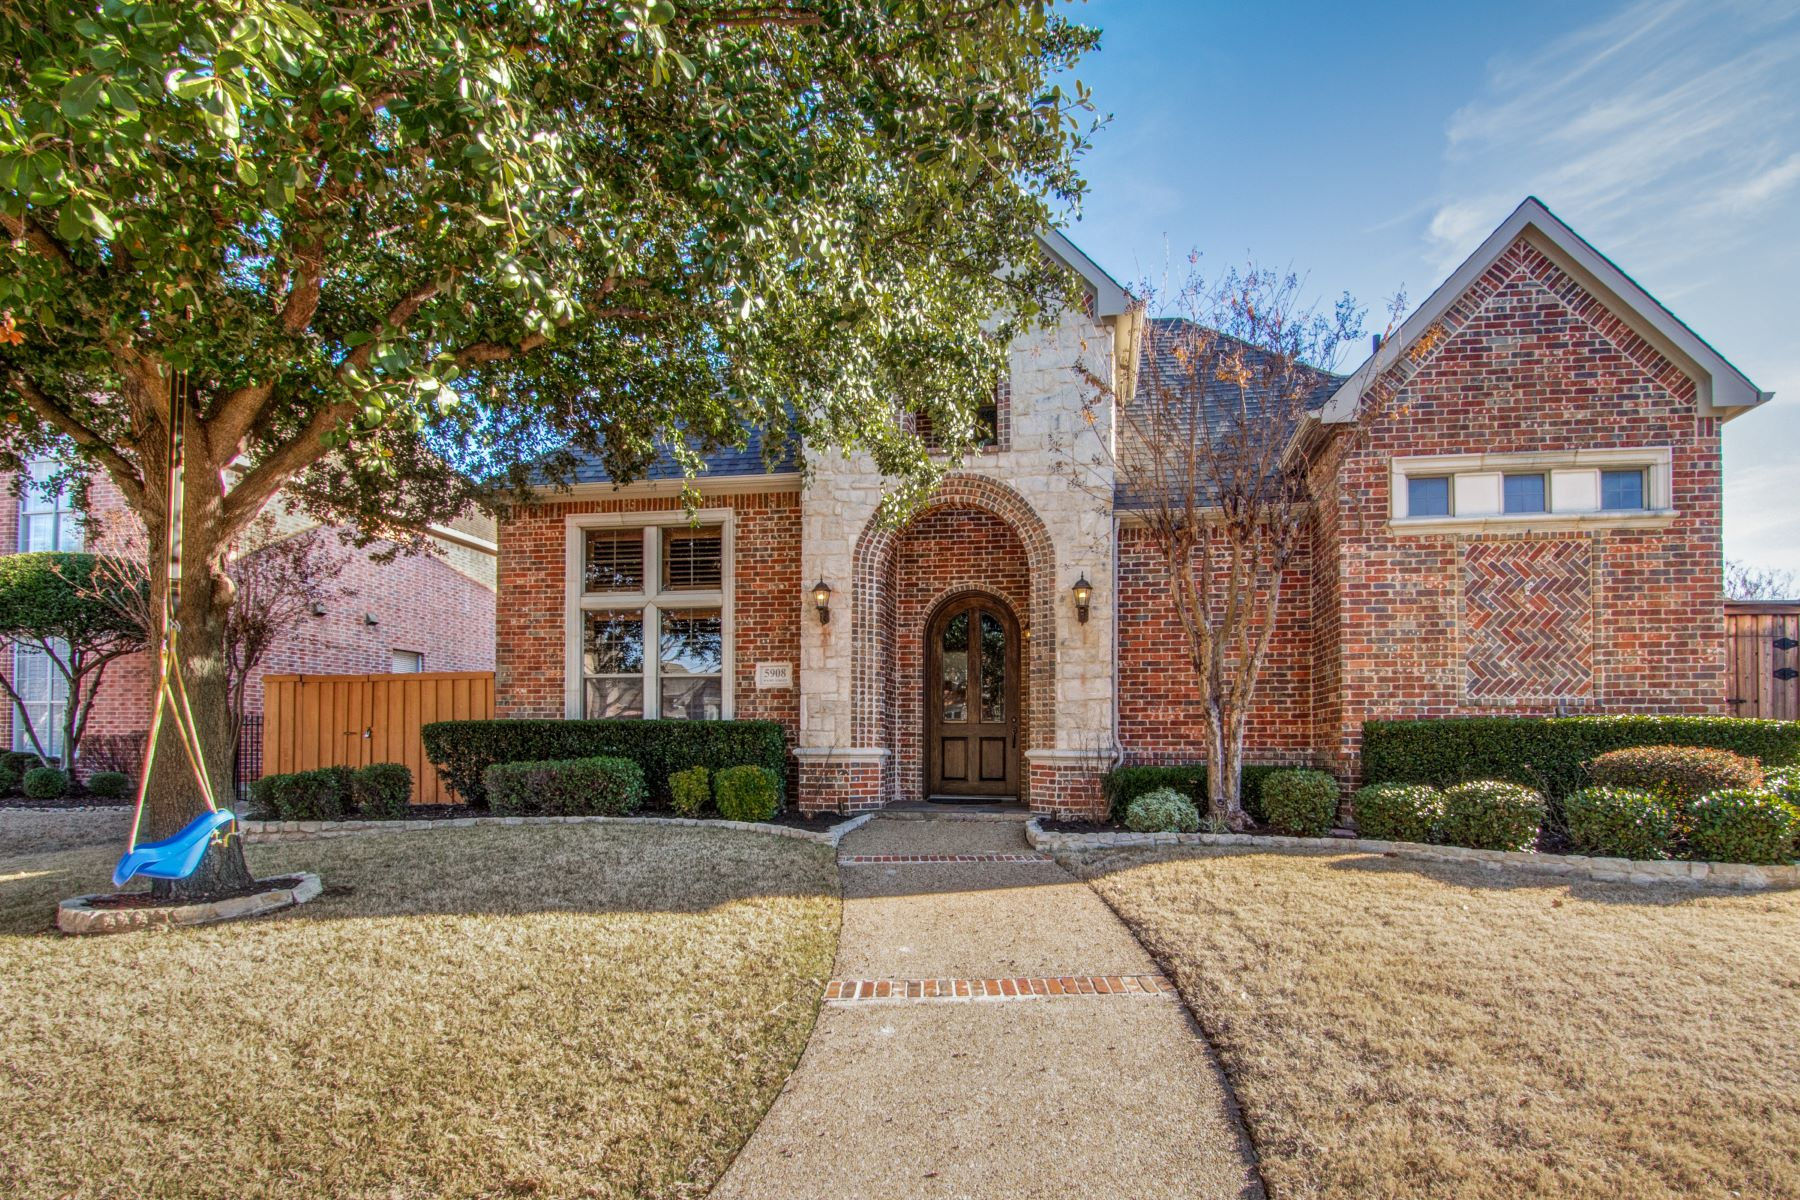 Single Family Homes for Sale at 5908 Wight St, Plano 5908 Wight Street Plano, Texas 75093 United States